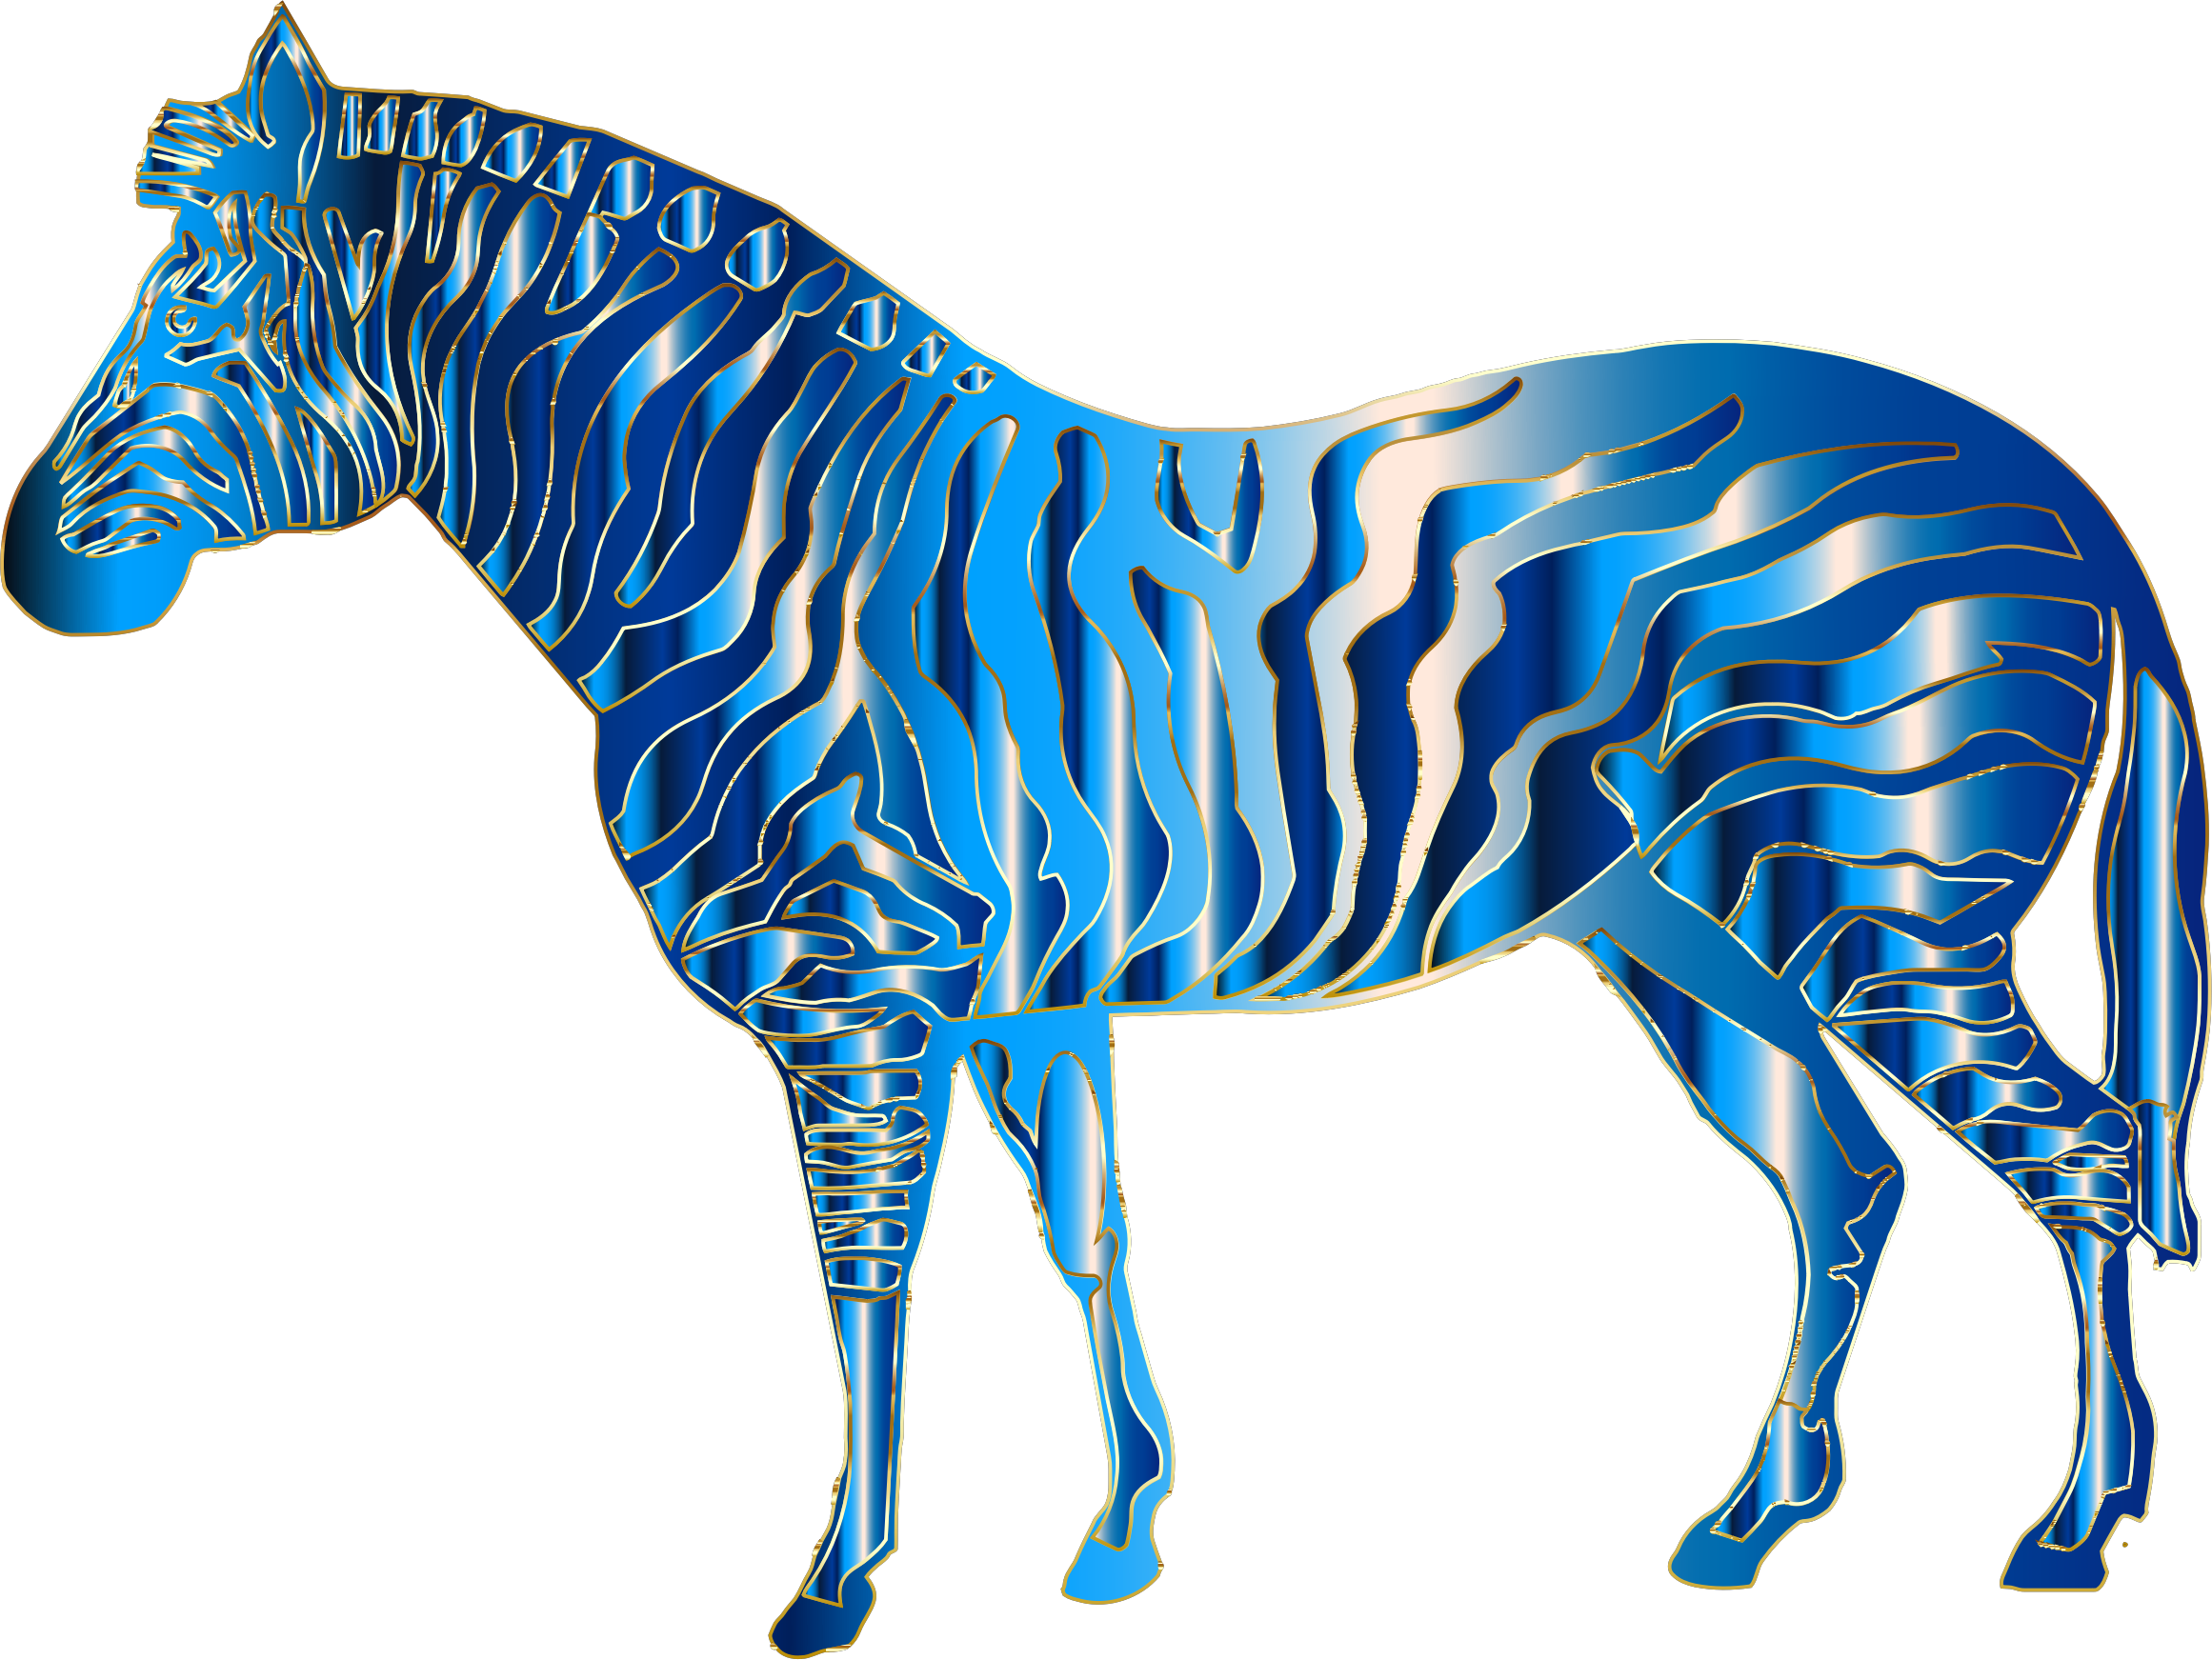 Aquamarine  Zebra by GDJ